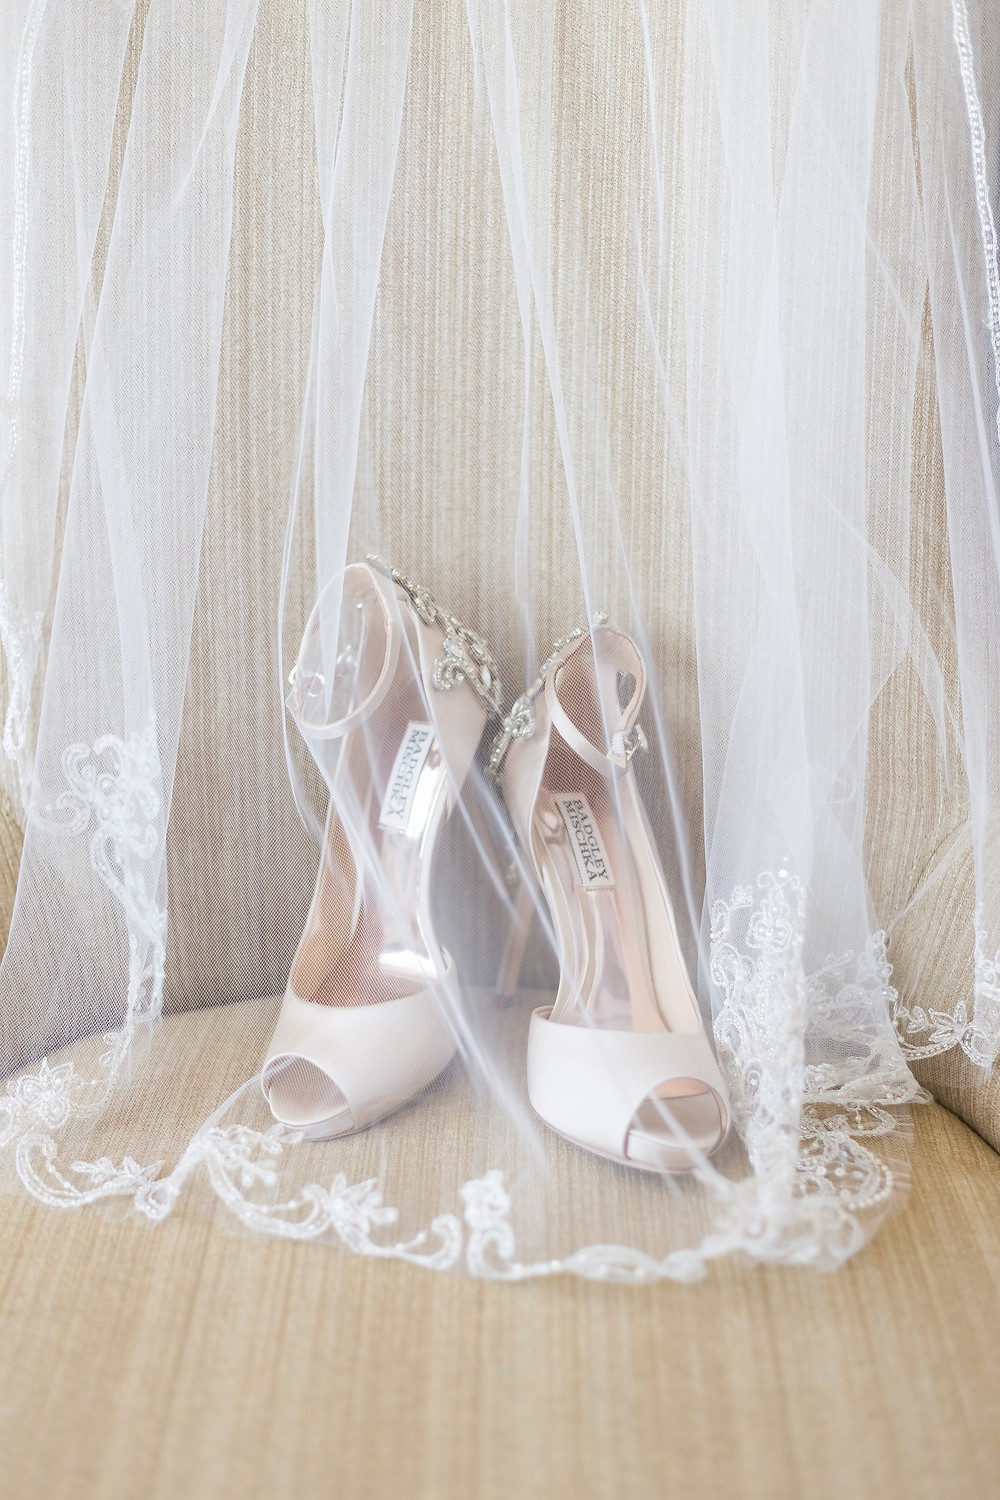 Bridal shoes for the wedding day with a veil.